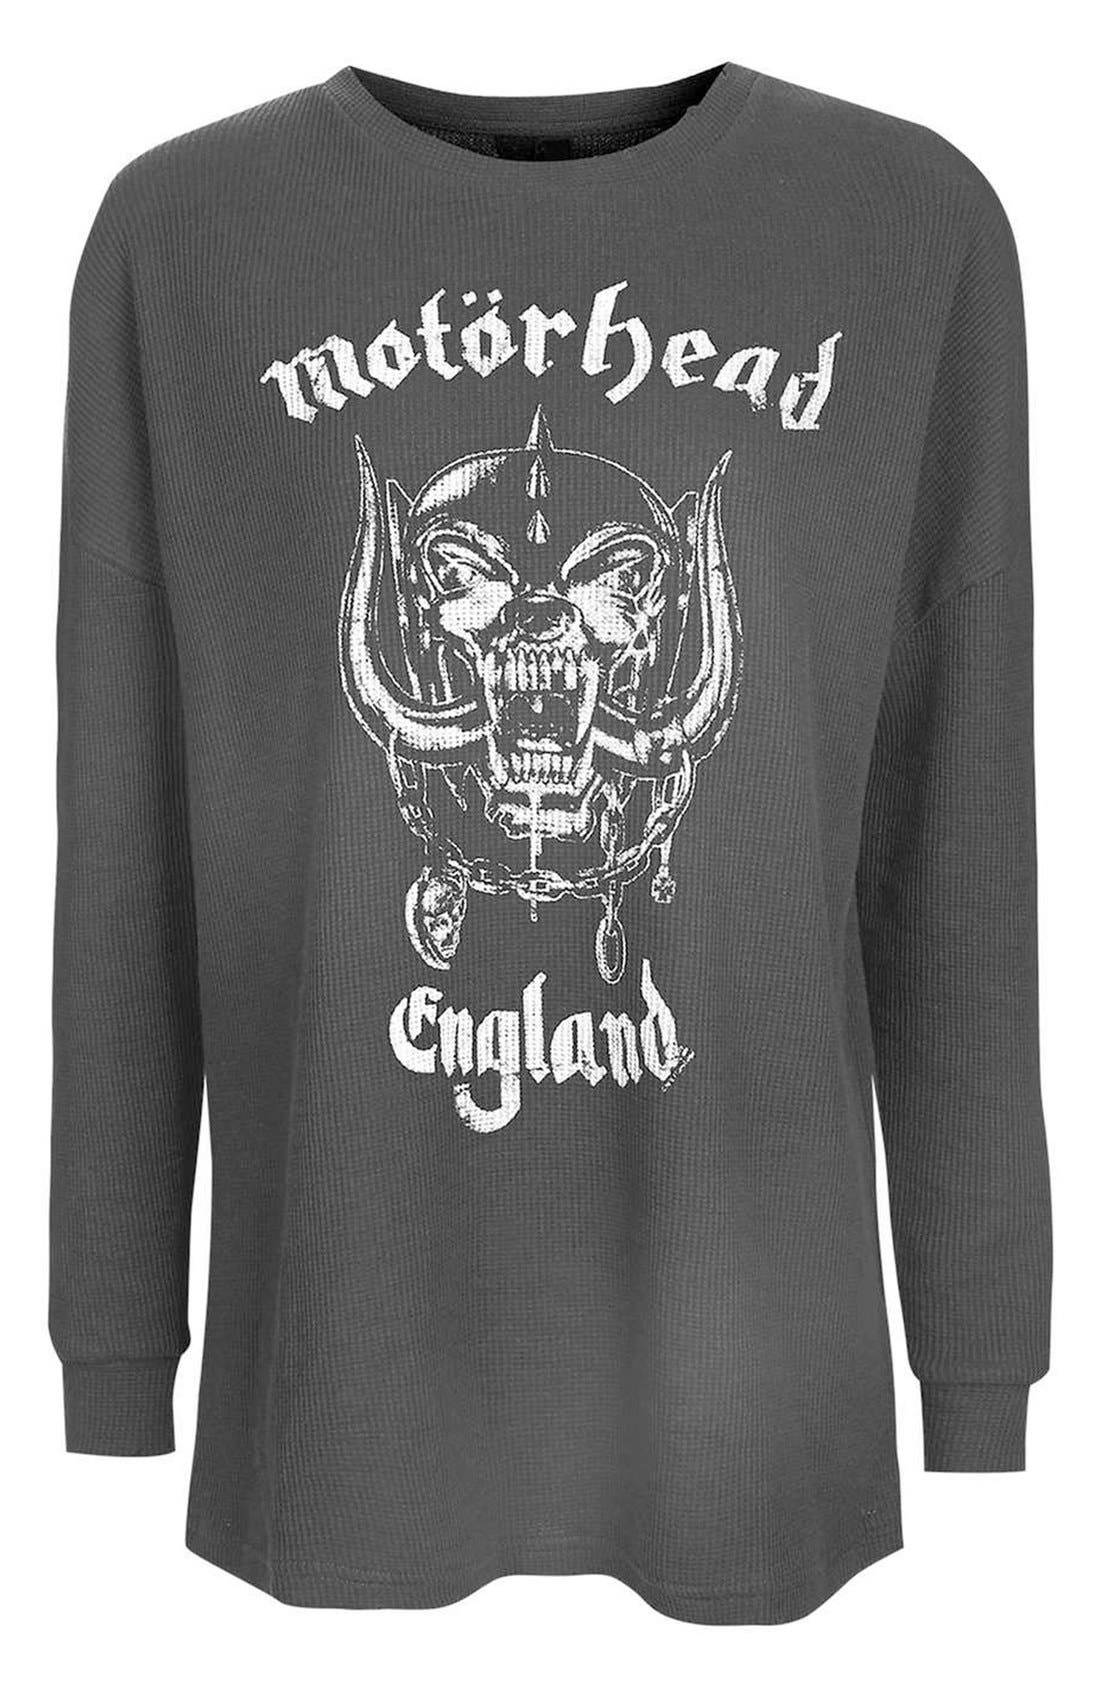 TOPSHOP,                             by And Finally Motorhead Sweatshirt,                             Alternate thumbnail 3, color,                             001